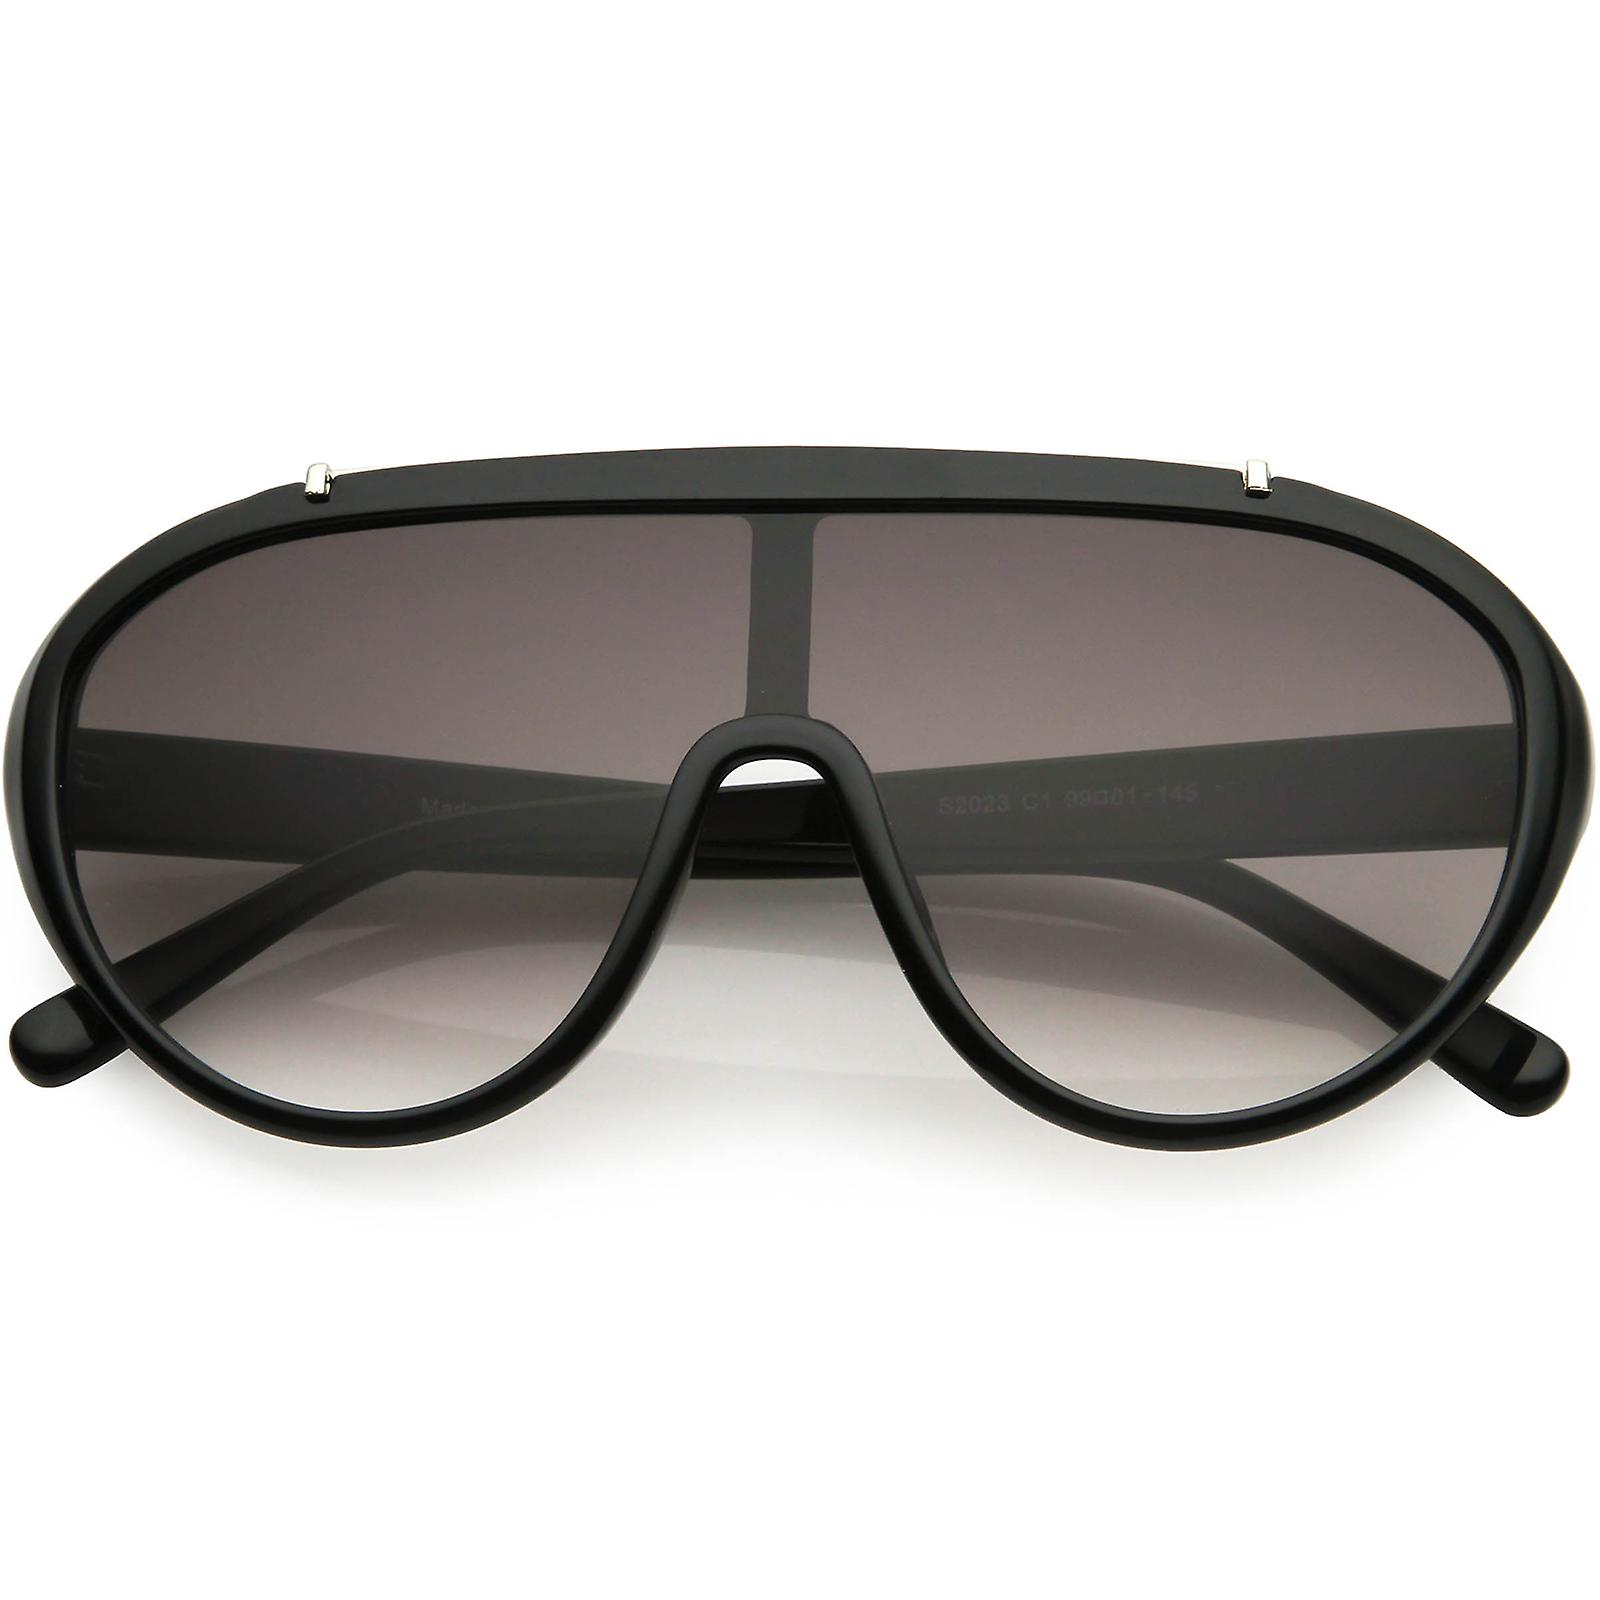 Sporty Fashion Oversize Metal Brow Bar Accent Shield Sunglasses 58mm